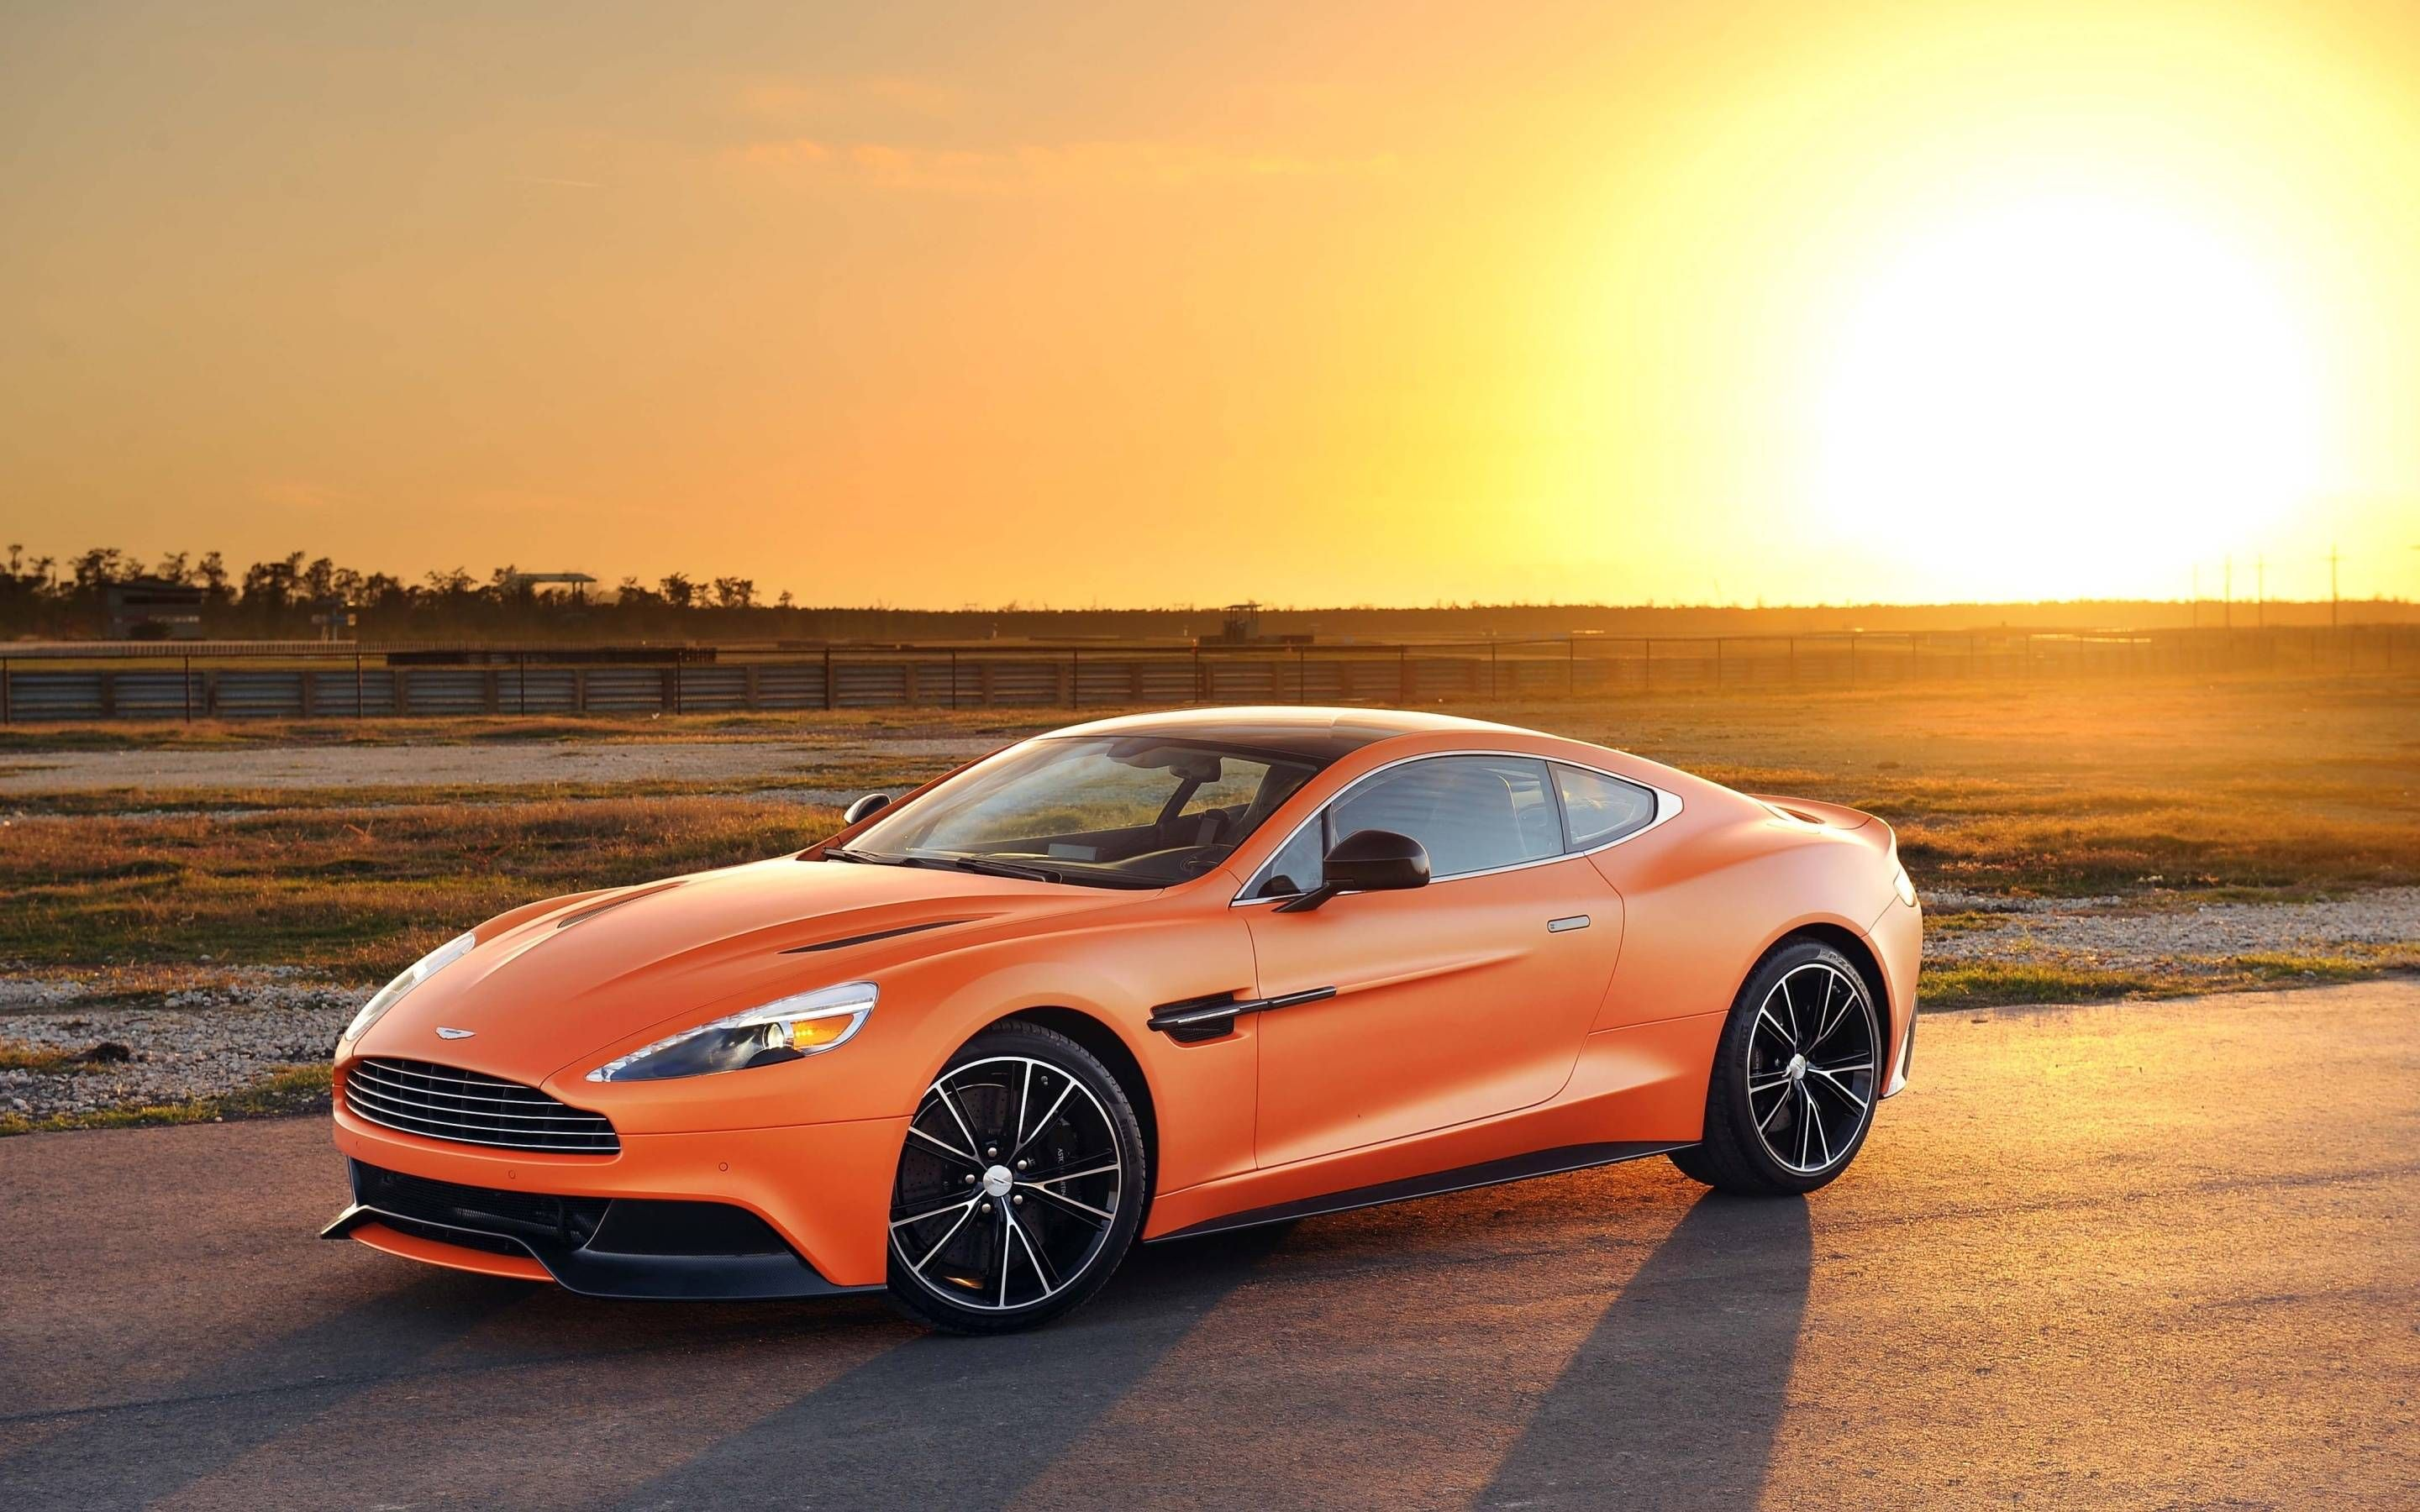 Aston Martin Vanquish Wallpaper Images 0CW Cars Aston martin 2880x1800